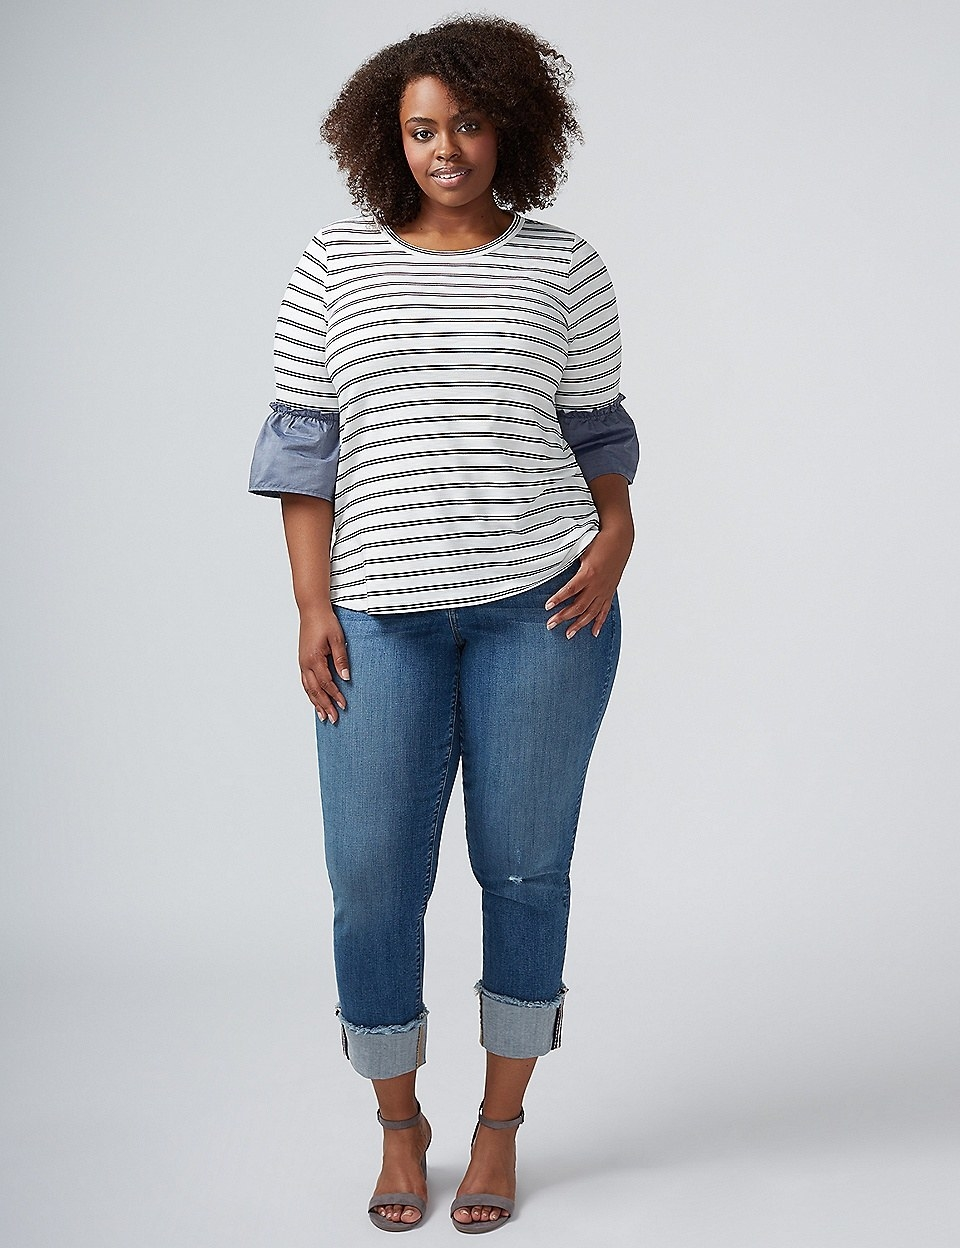 4c47bd140862a 15 Of The Best Places To Buy Plus-Size Jeans